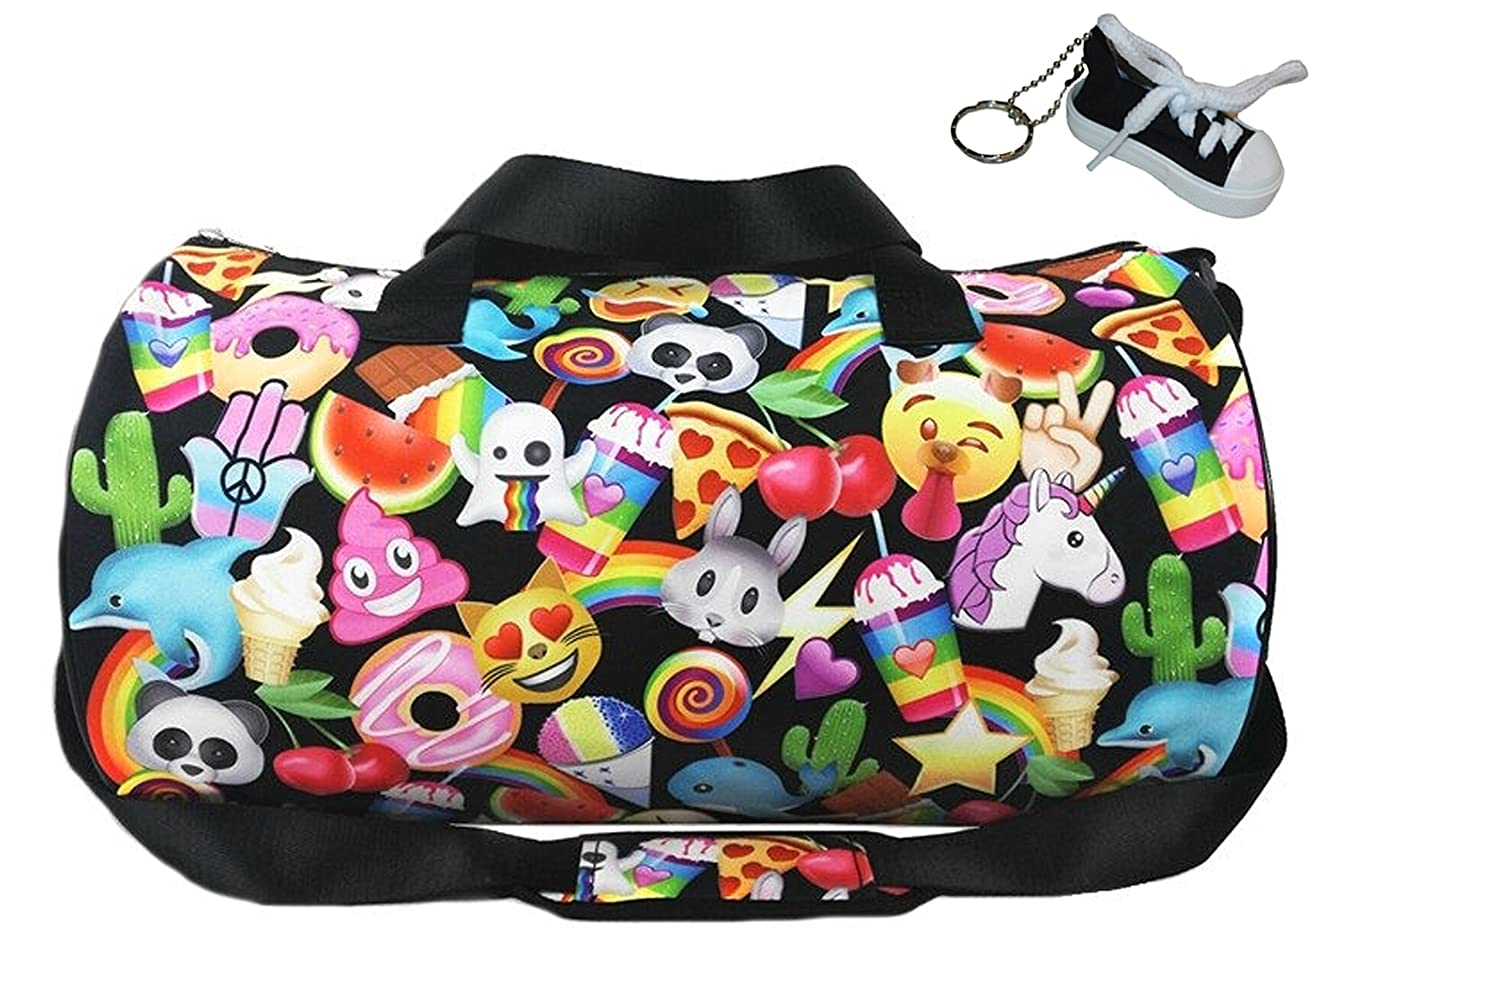 Emoji Nation Sporty Duffle Bag & Keychain Multi-pack, Back to School, Sports Top Trenz b106111